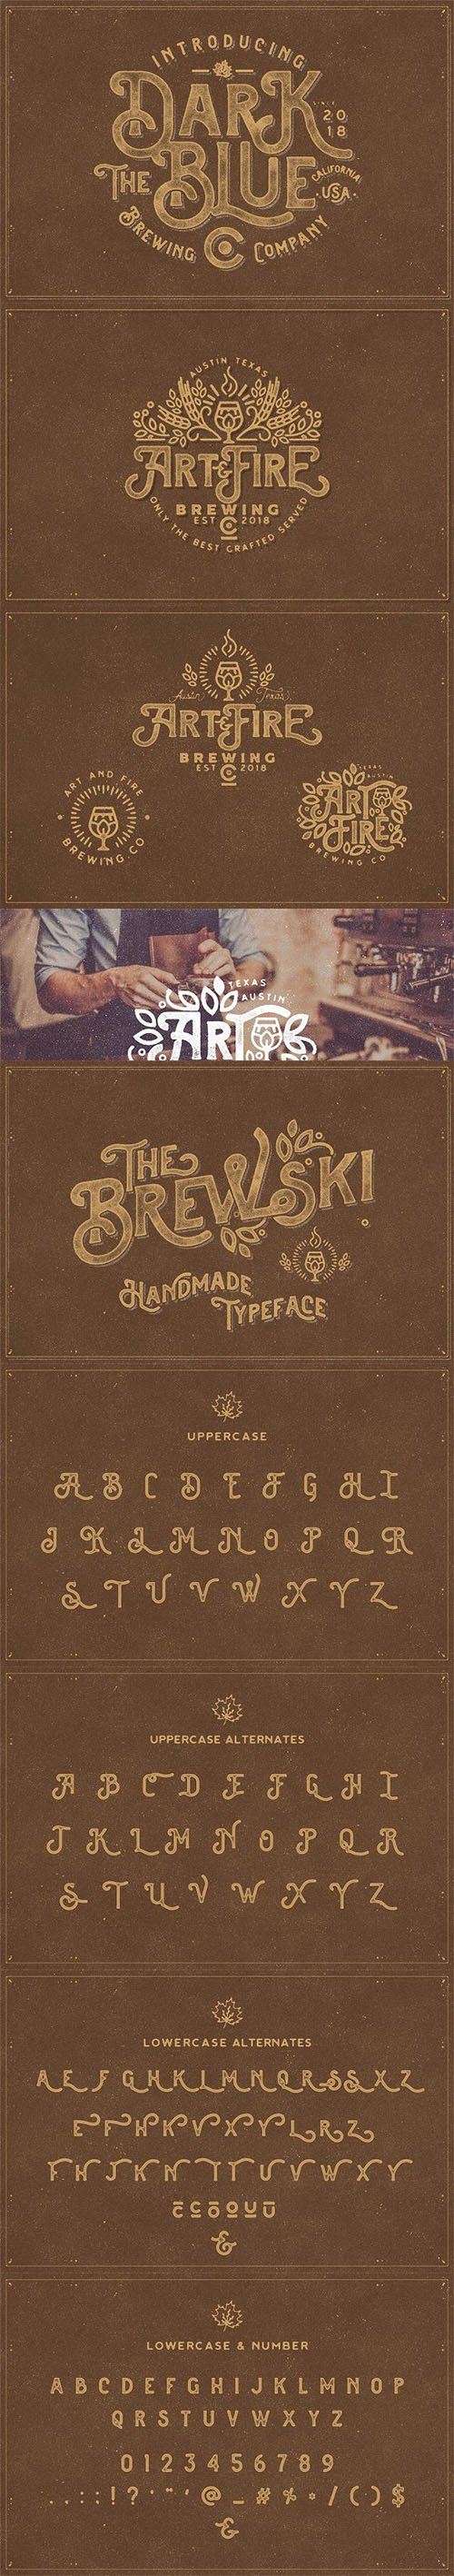 The Brewski - Textured Typeface 2872793